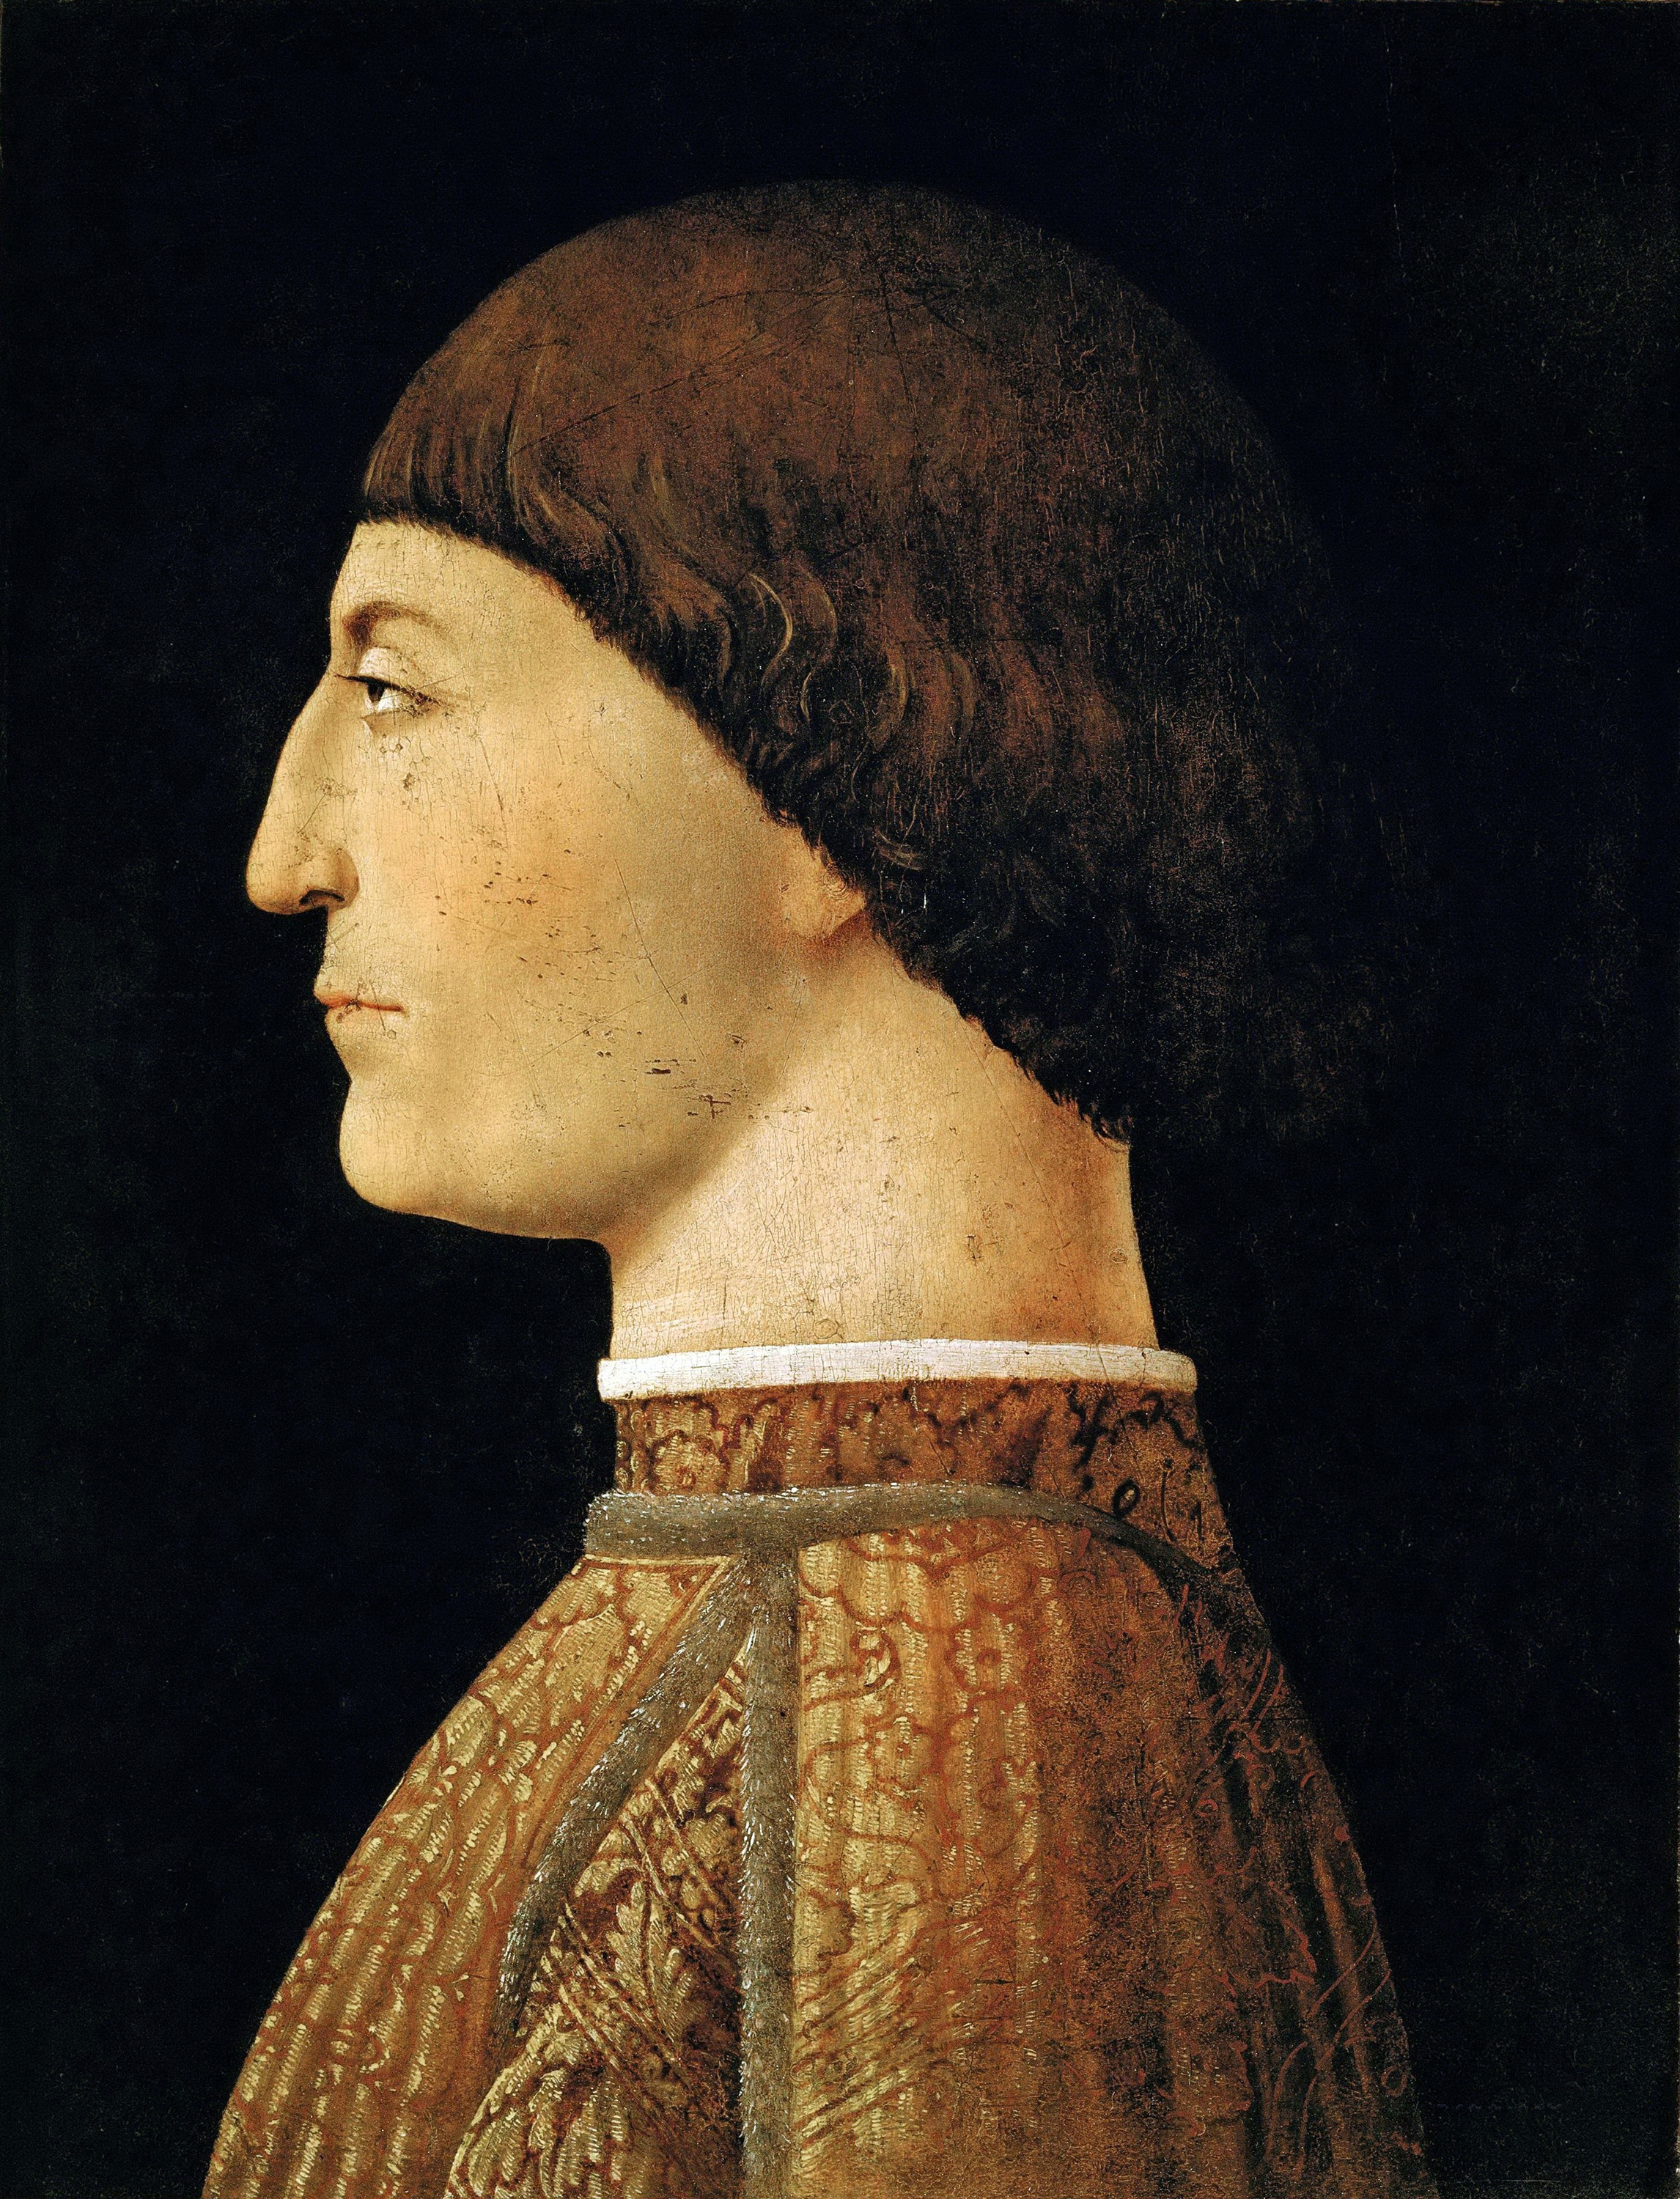 Portrait of Sigismondo Pandolfo Malatesta, 1451 — Piero della Francesca,